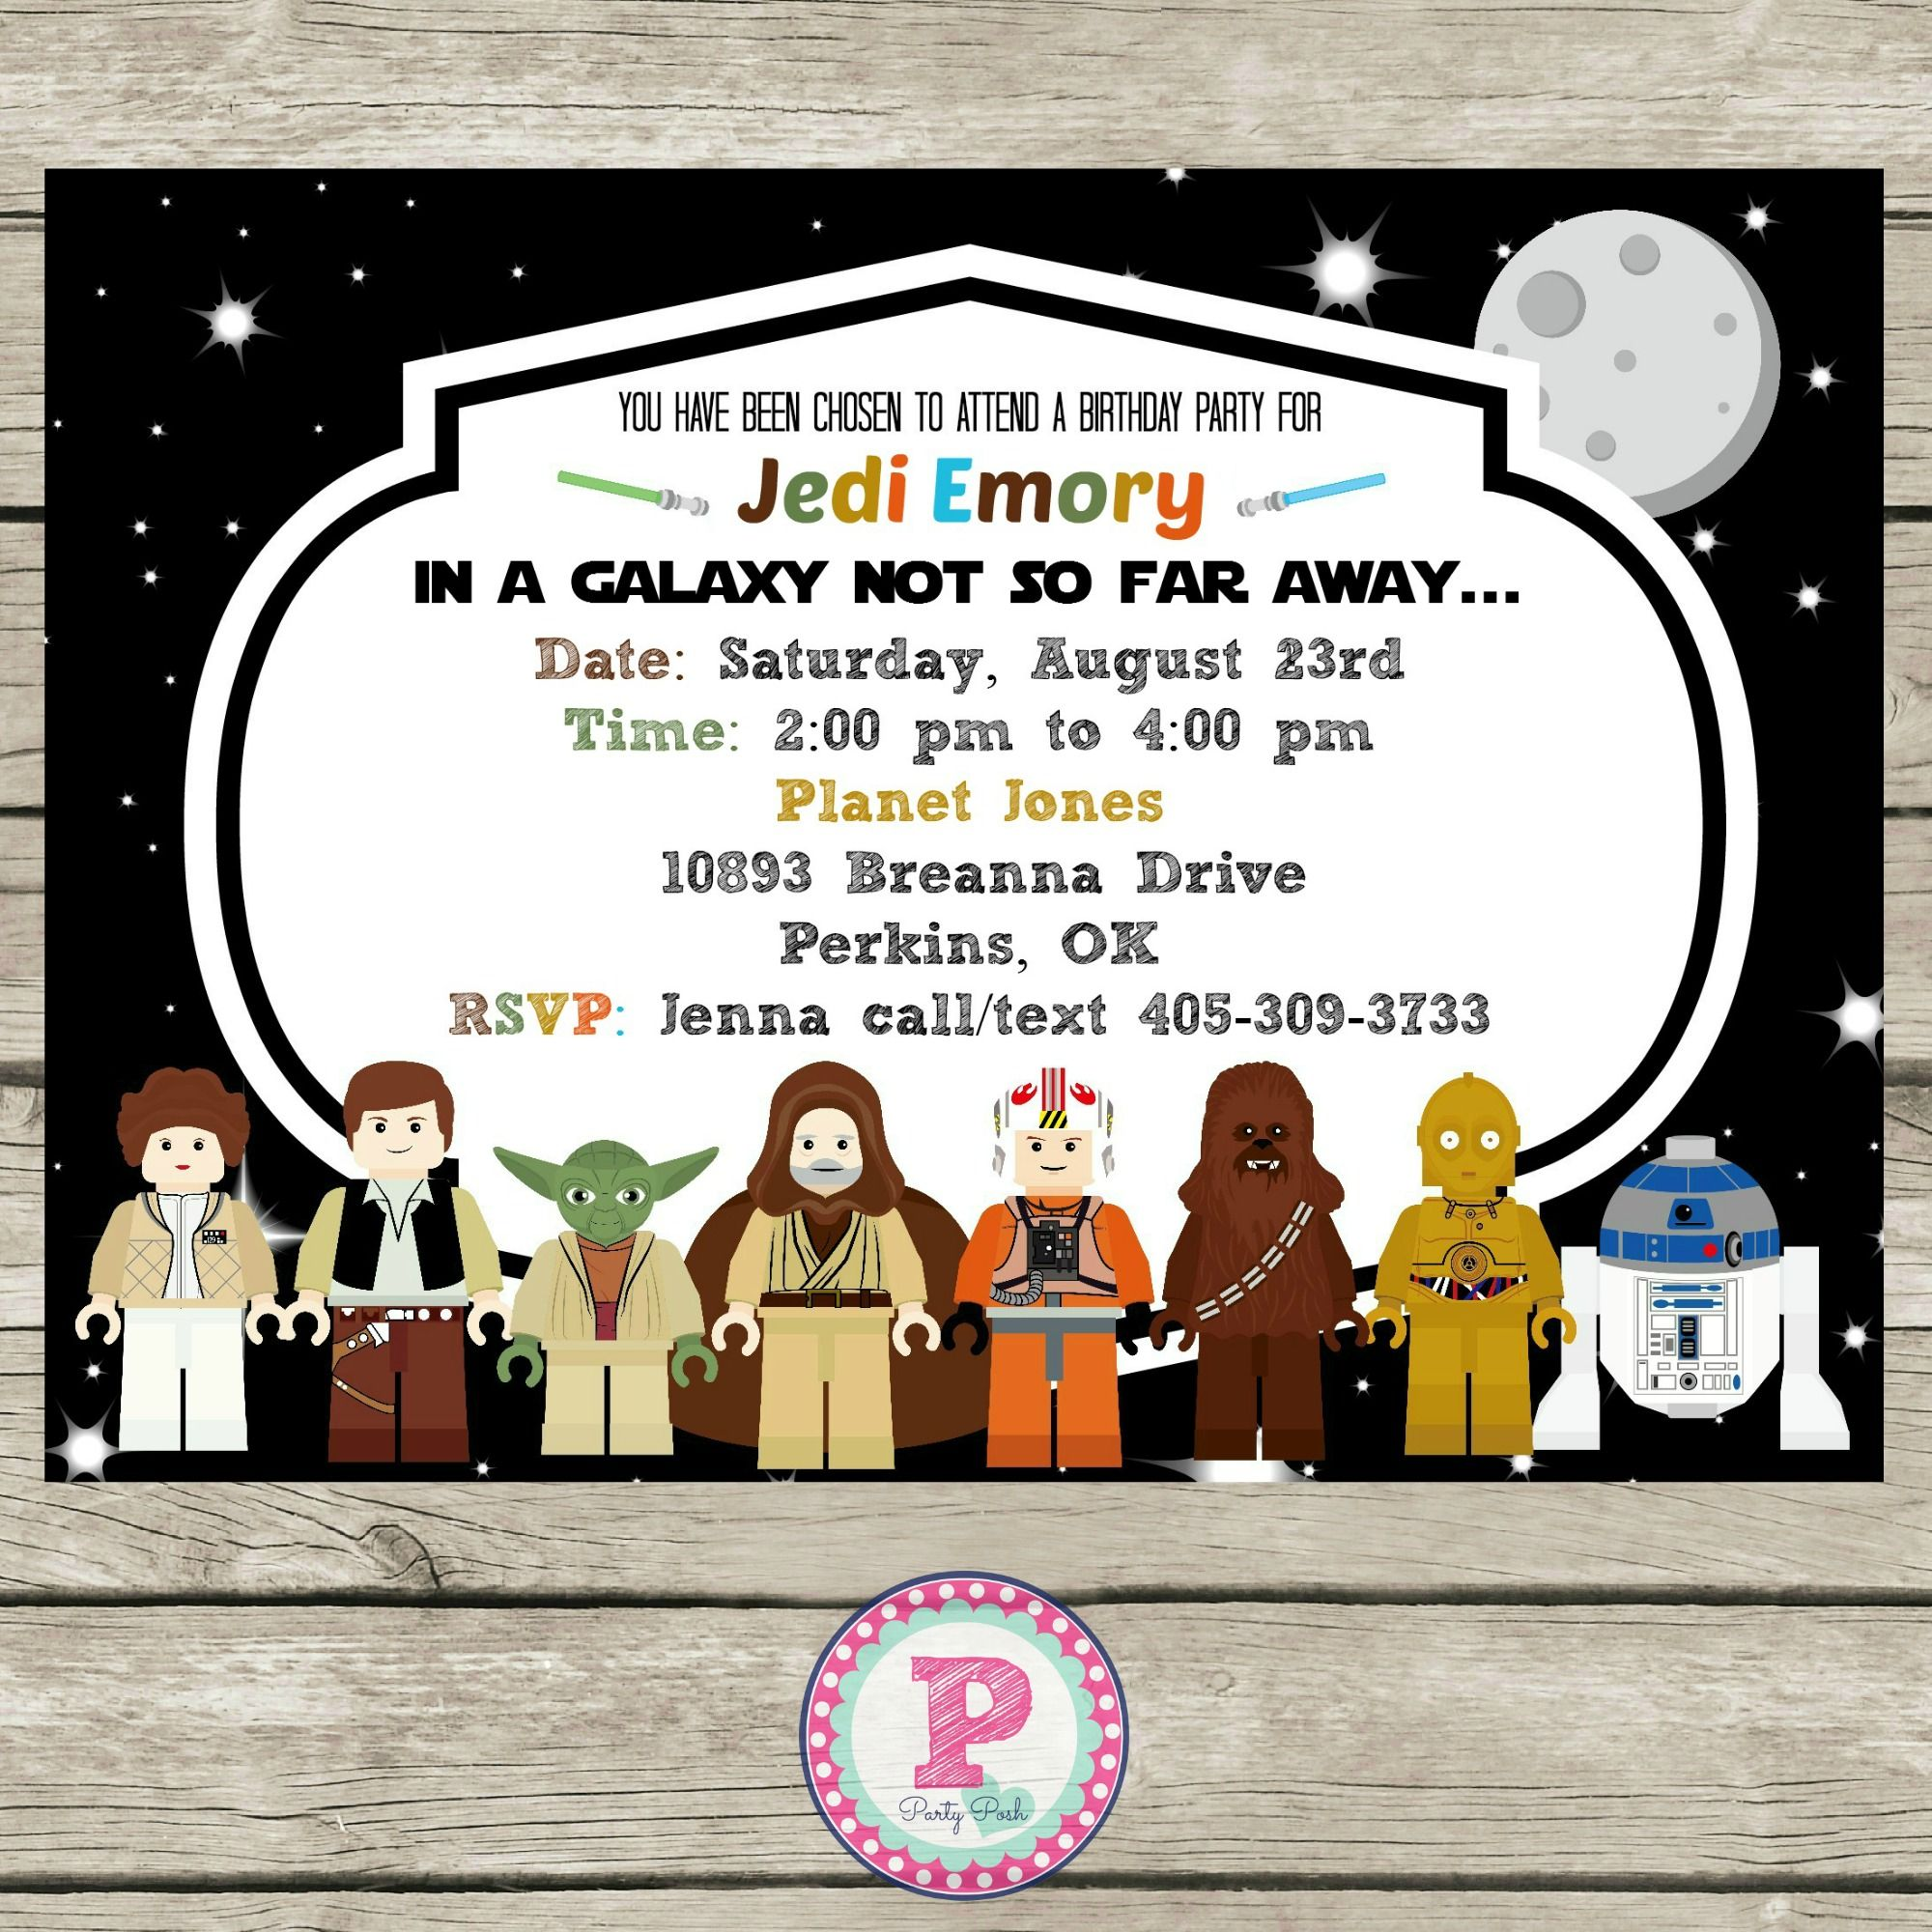 graphic about Printable Star Wars Invitation named Lego Star Wars Birthday Get together Invitation Star Wars Bash